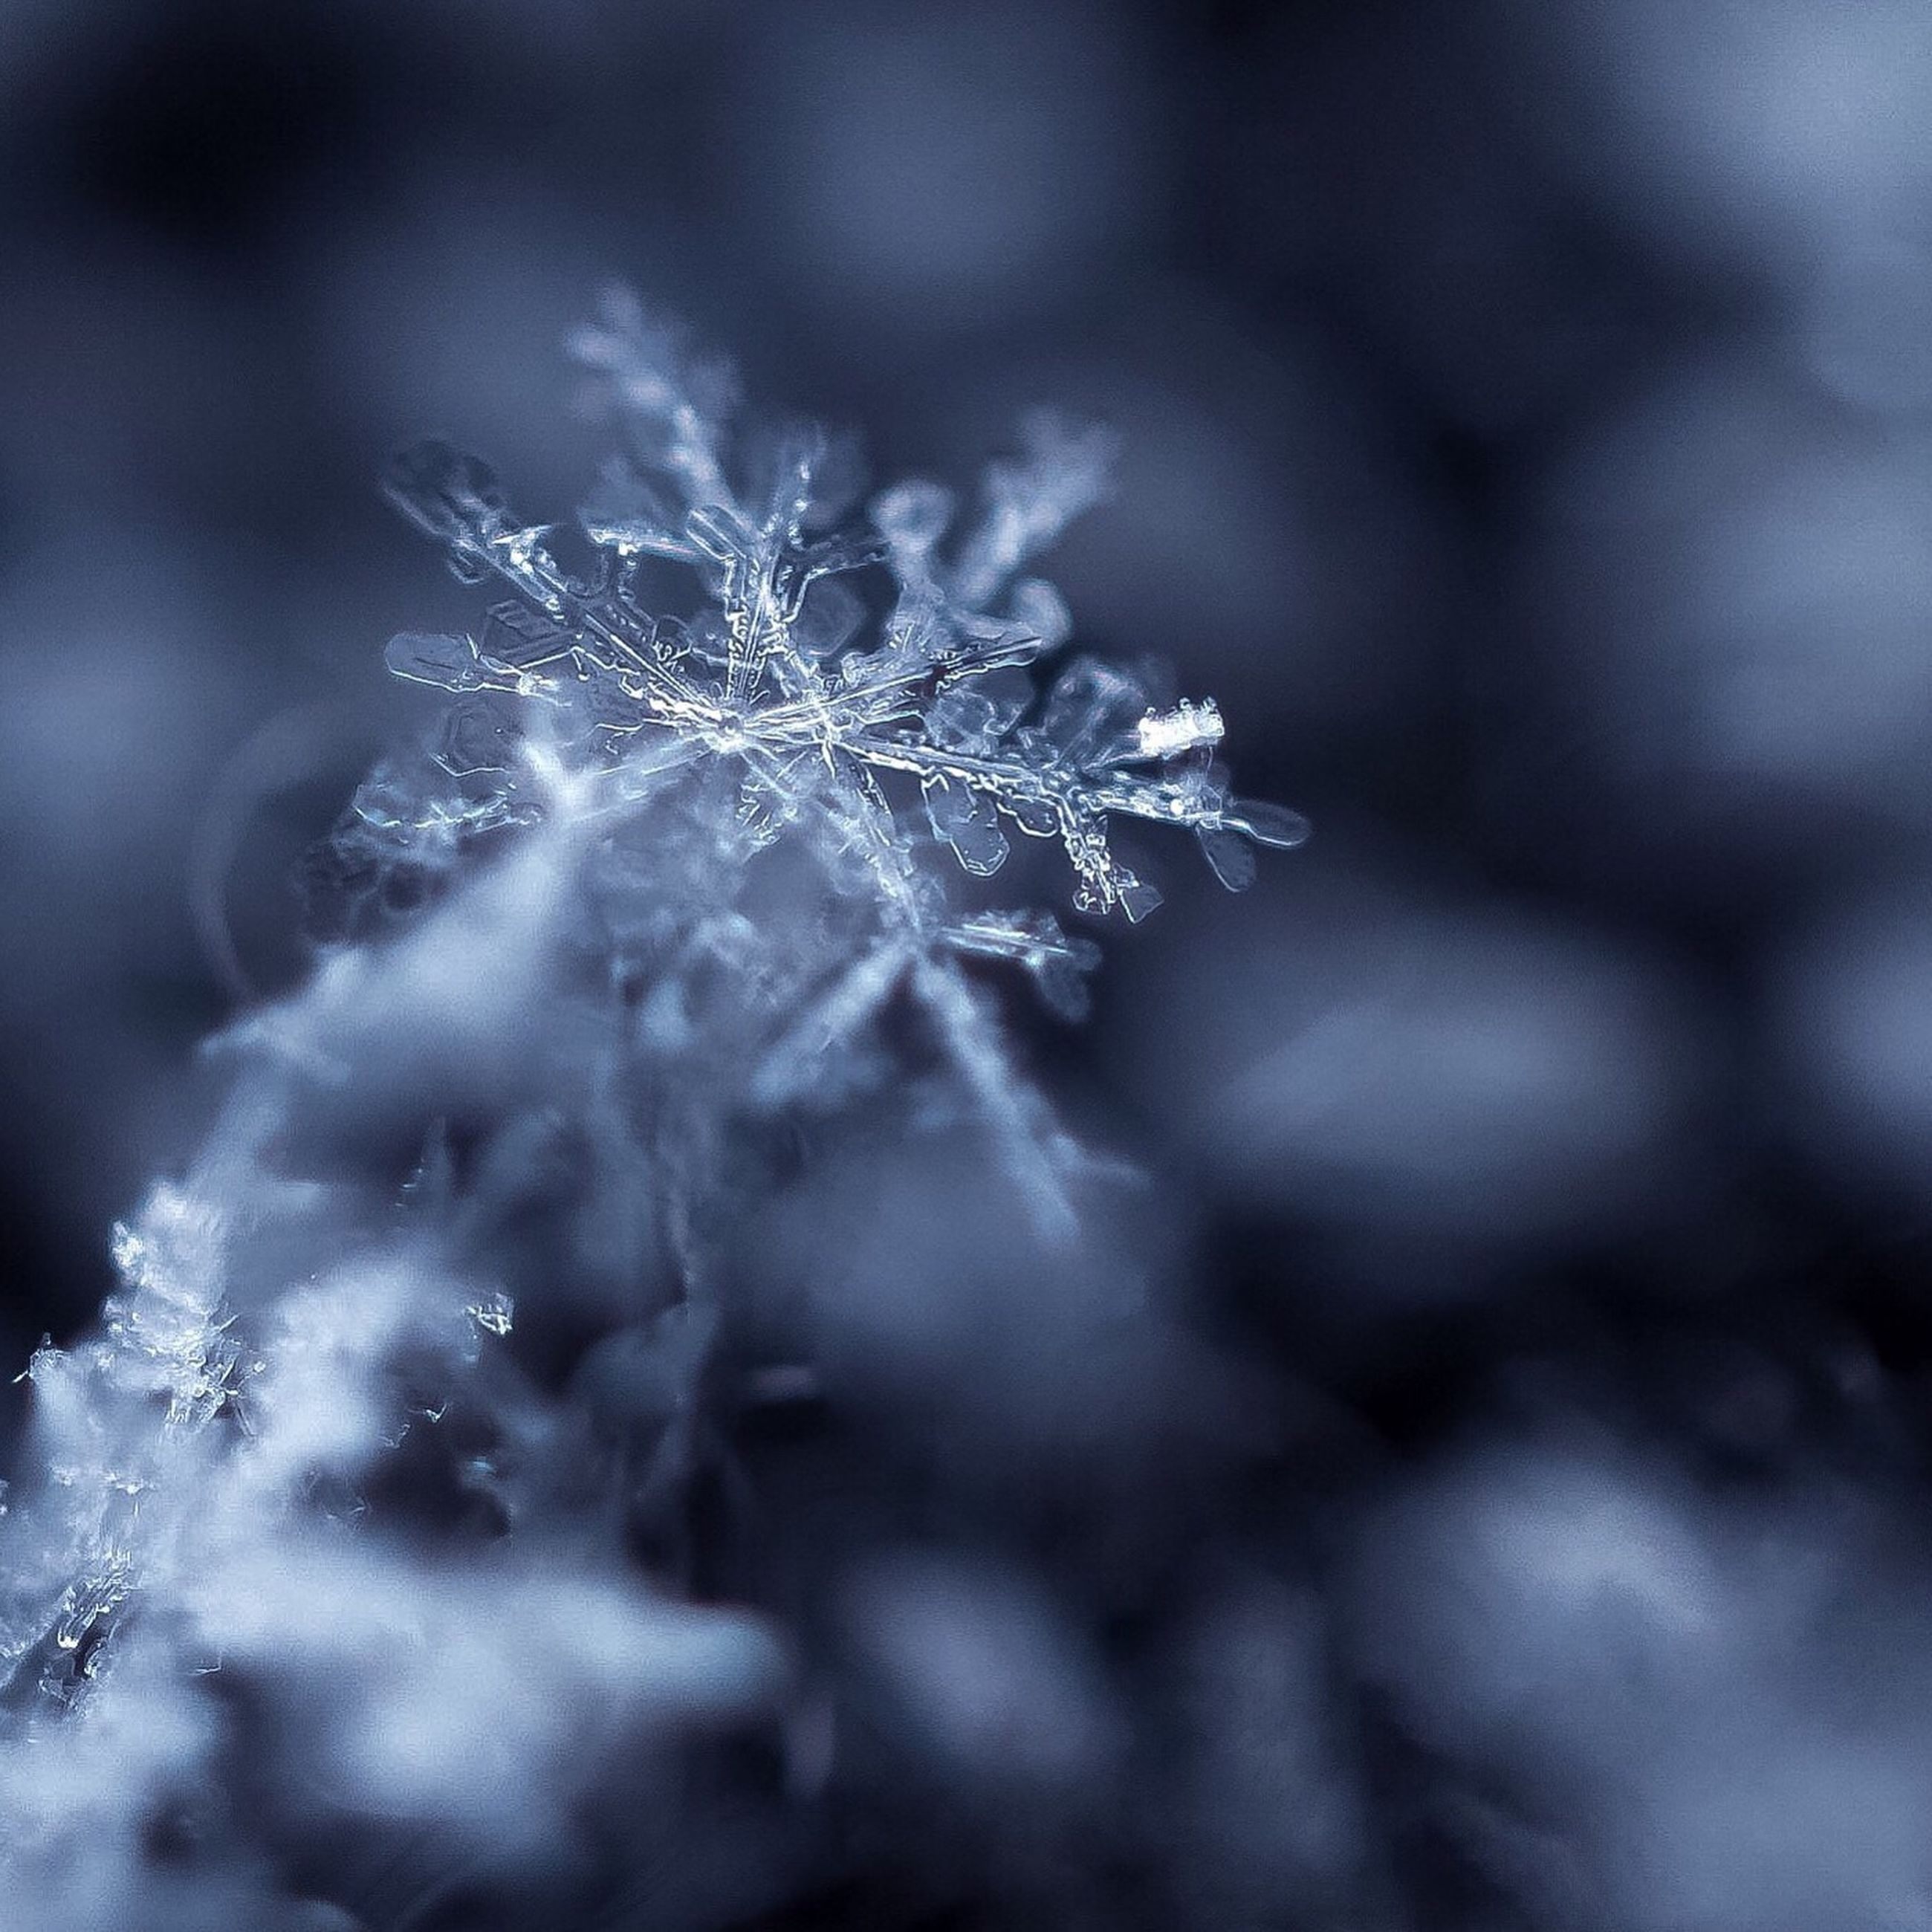 winter, cold temperature, snow, snowflake, close-up, nature, weather, frost, beauty in nature, frozen, no people, ice crystal, outdoors, snowing, fragility, spider web, day